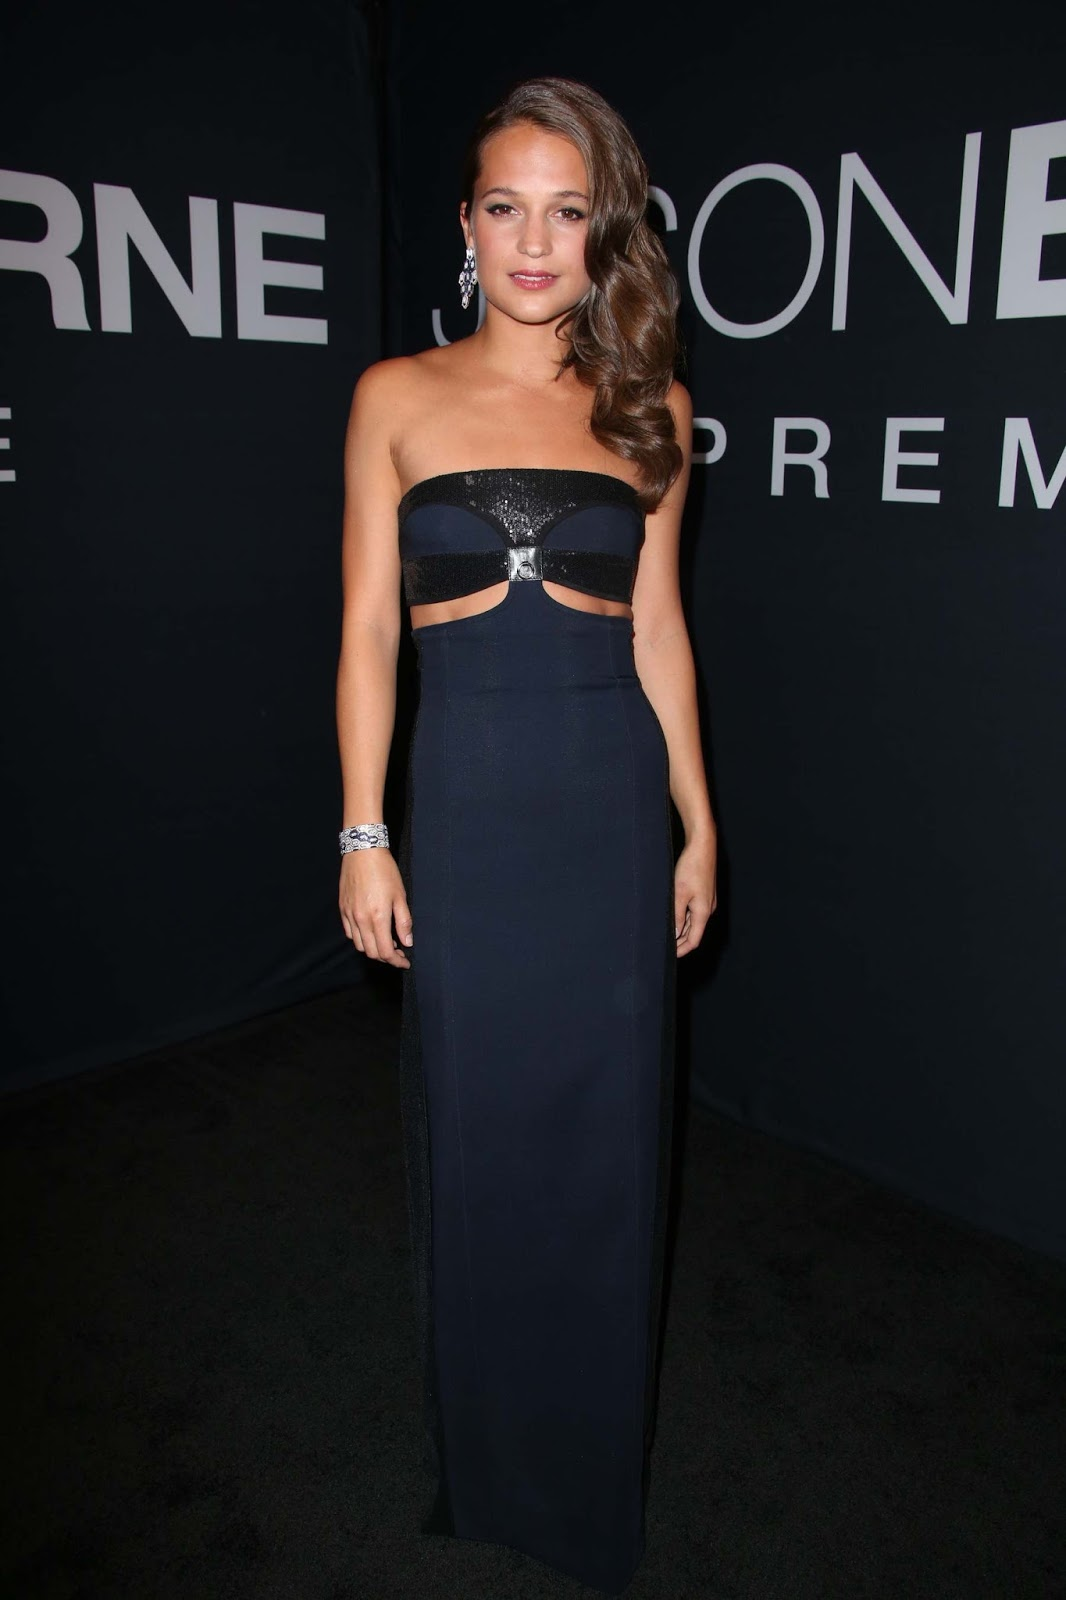 Alicia Vikander wears strapless gown to the 'Jason Bourne' Las Vegas premiere